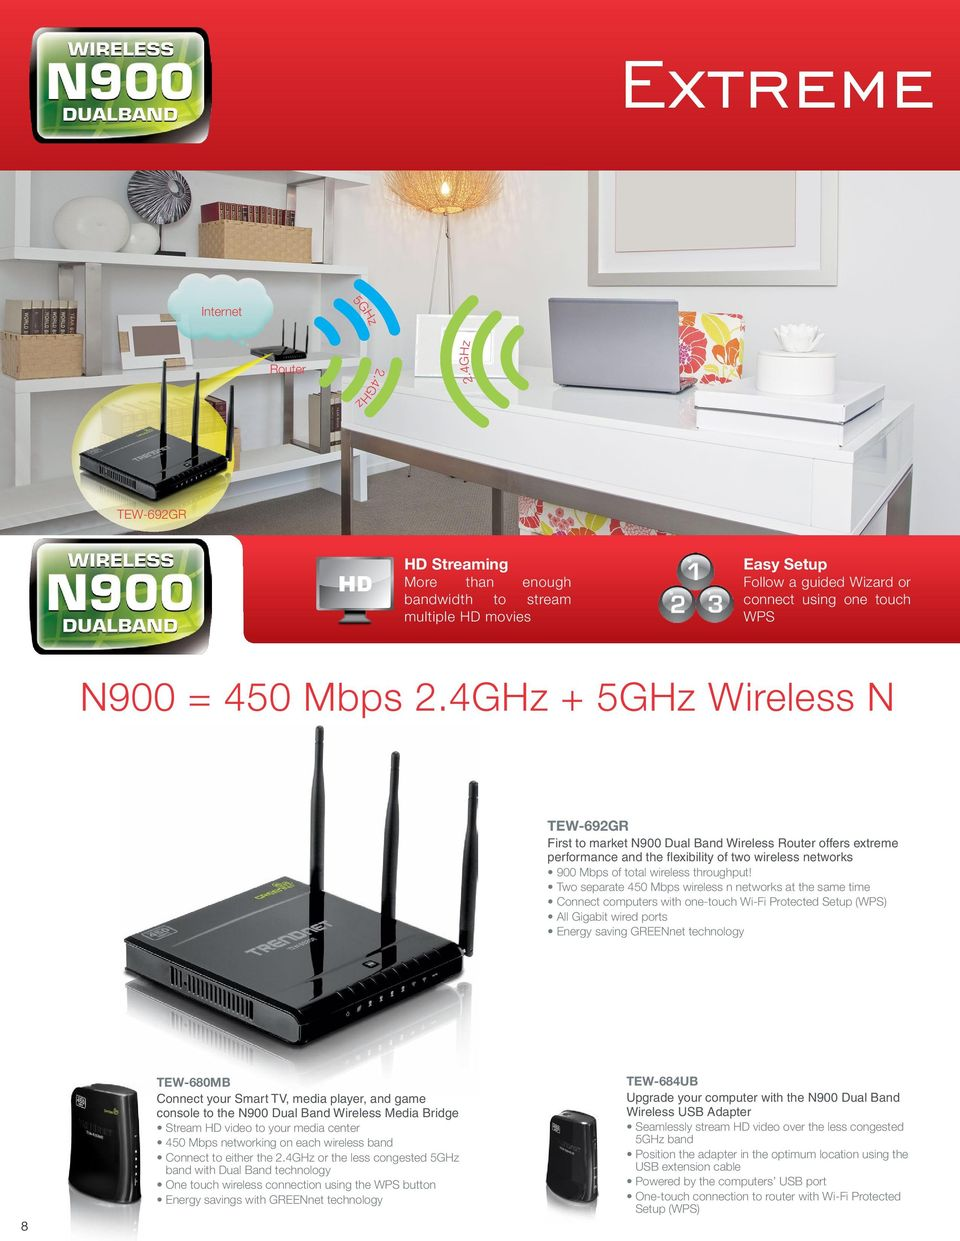 4GHz + 5GHz Wireless N TEW-692GR First to market N900 Dual Band Wireless Router offers extreme performance and the flexibility of two wireless networks 900 Mbps of total wireless throughput!